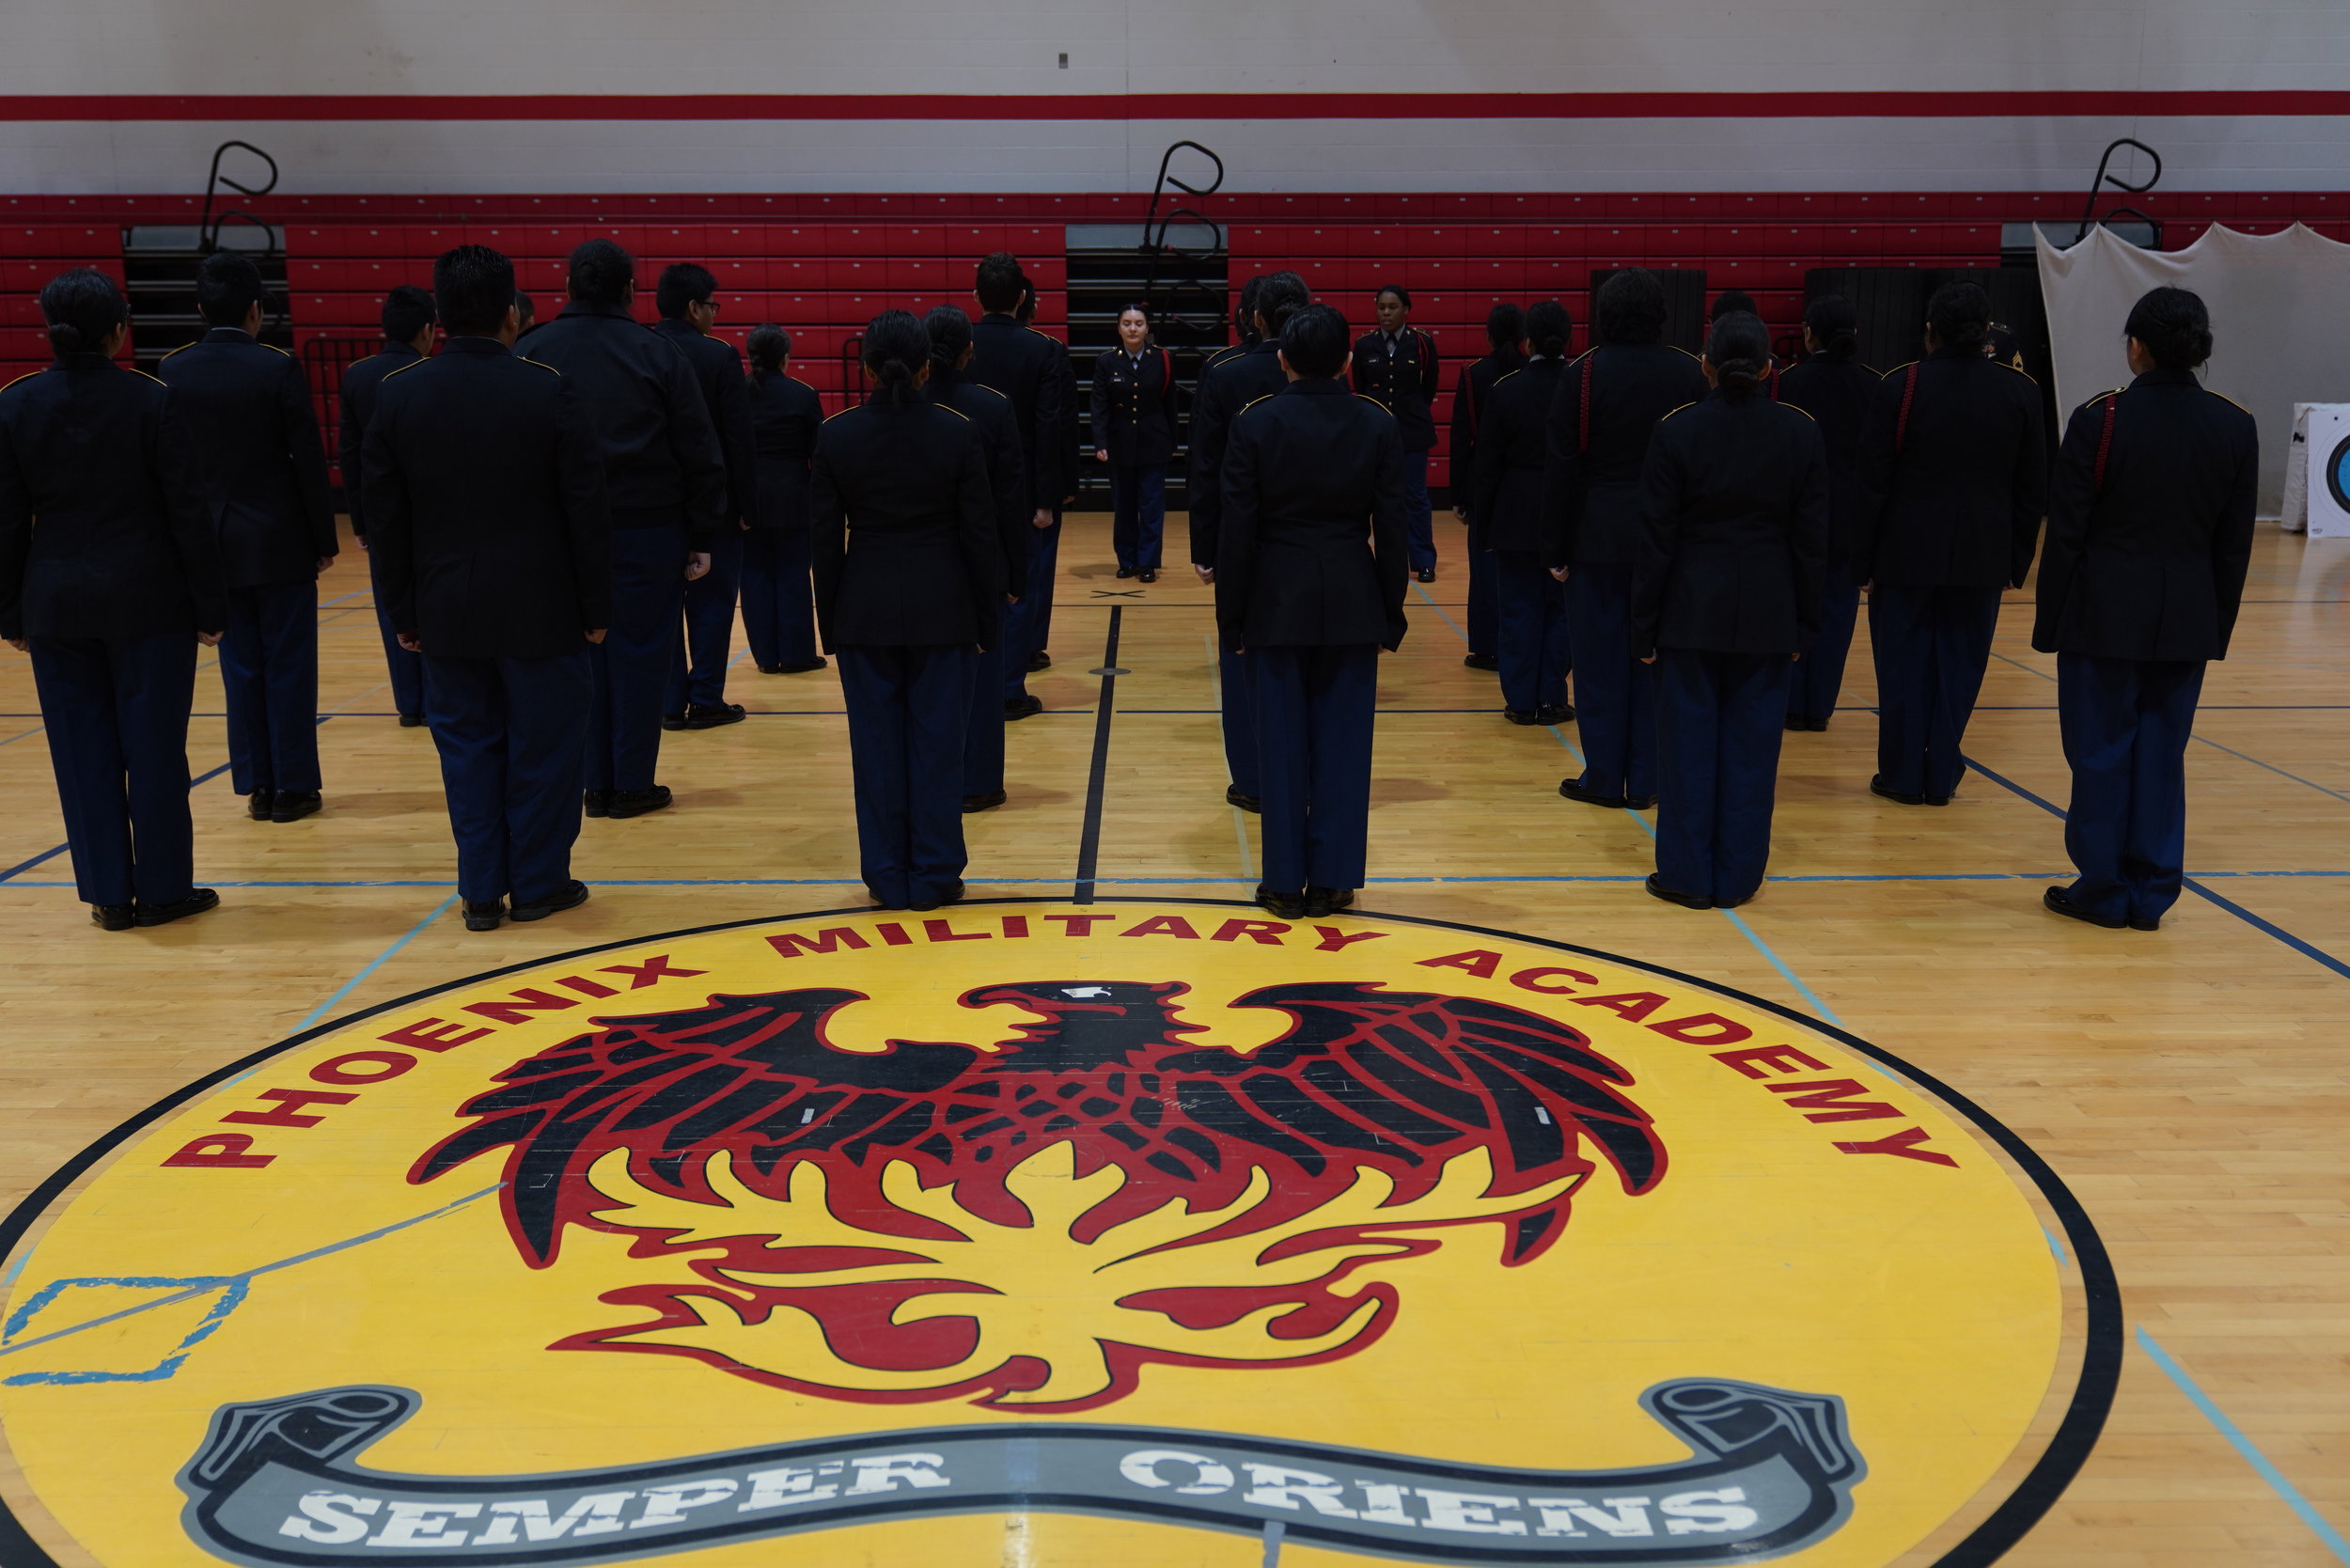 - In October 2018 I began photographing Phoenix Military Academy, a CPS high school in Chicago's Near West Side neighborhood.